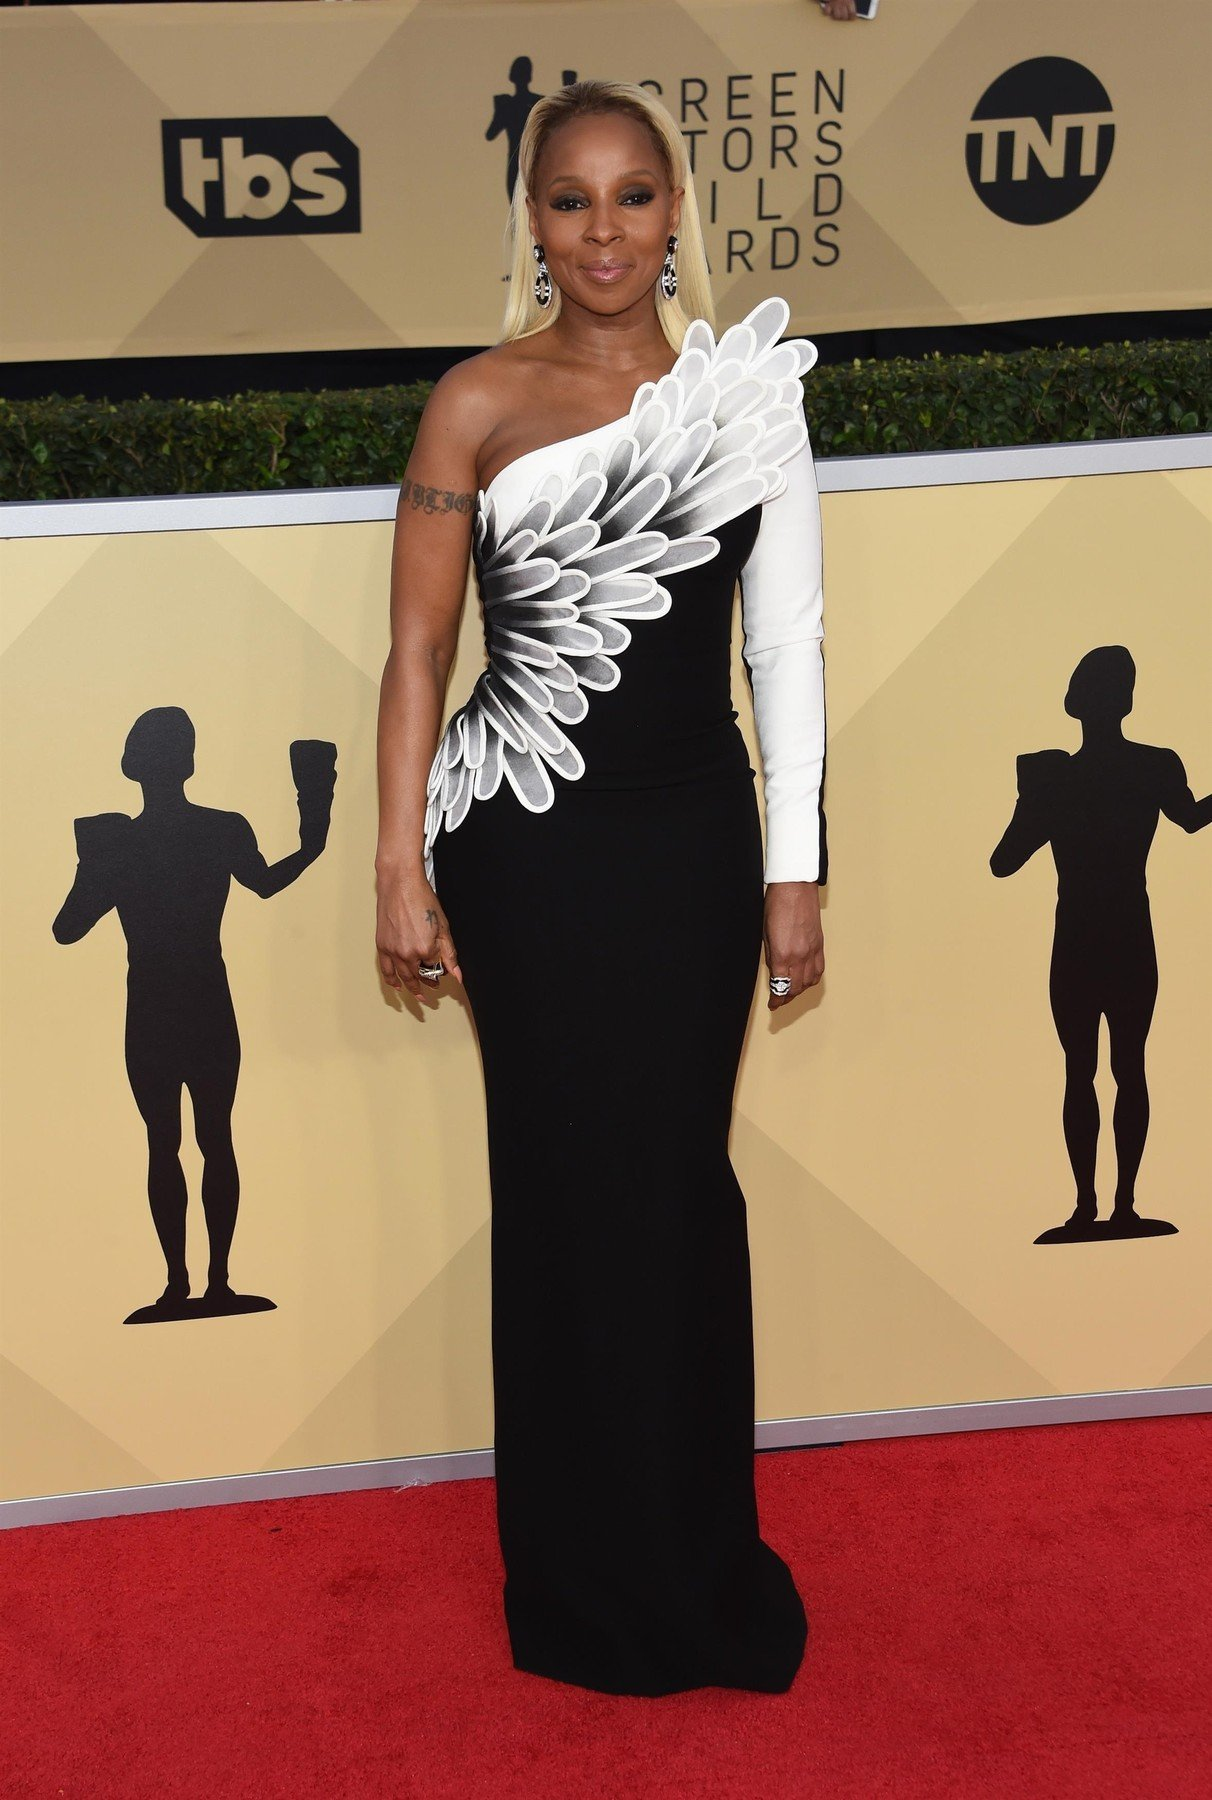 ** RIGHTS: WORLDWIDE EXCEPT IN FRANCE ** Los Angeles, CA  - Celebrities attend the 24th annual Screen Actors Guild Awards held at The Shrine Auditorium in Los Angeles, CA.  Pictured: Mary J. Blige    *UK Clients - Pictures Containing Children Please Pixelate Face Prior To Publication*, Image: 360908901, License: Rights-managed, Restrictions: , Model Release: no, Credit line: Profimedia, AKM-GSI